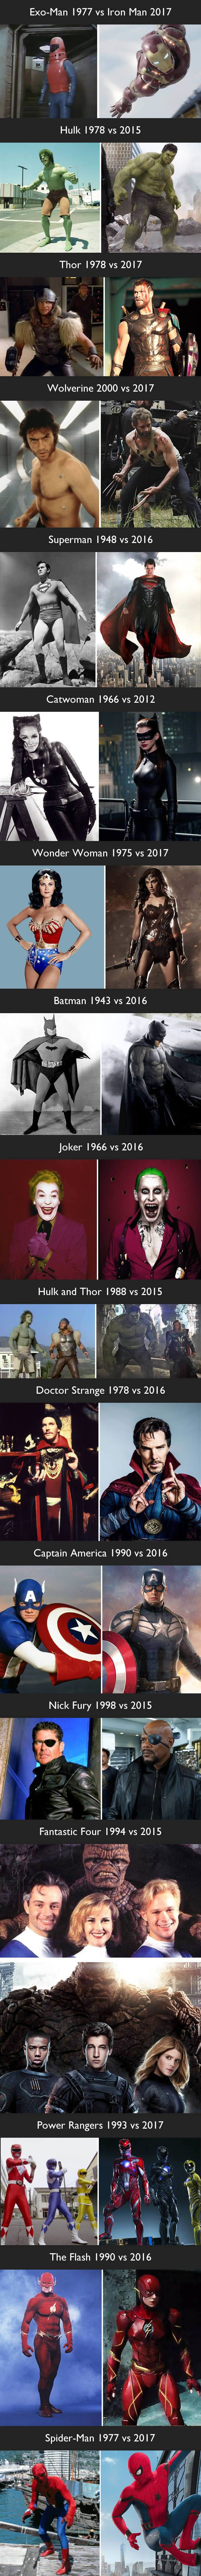 The Evolutions Of Superheroes Break The Old Is Gold Theory